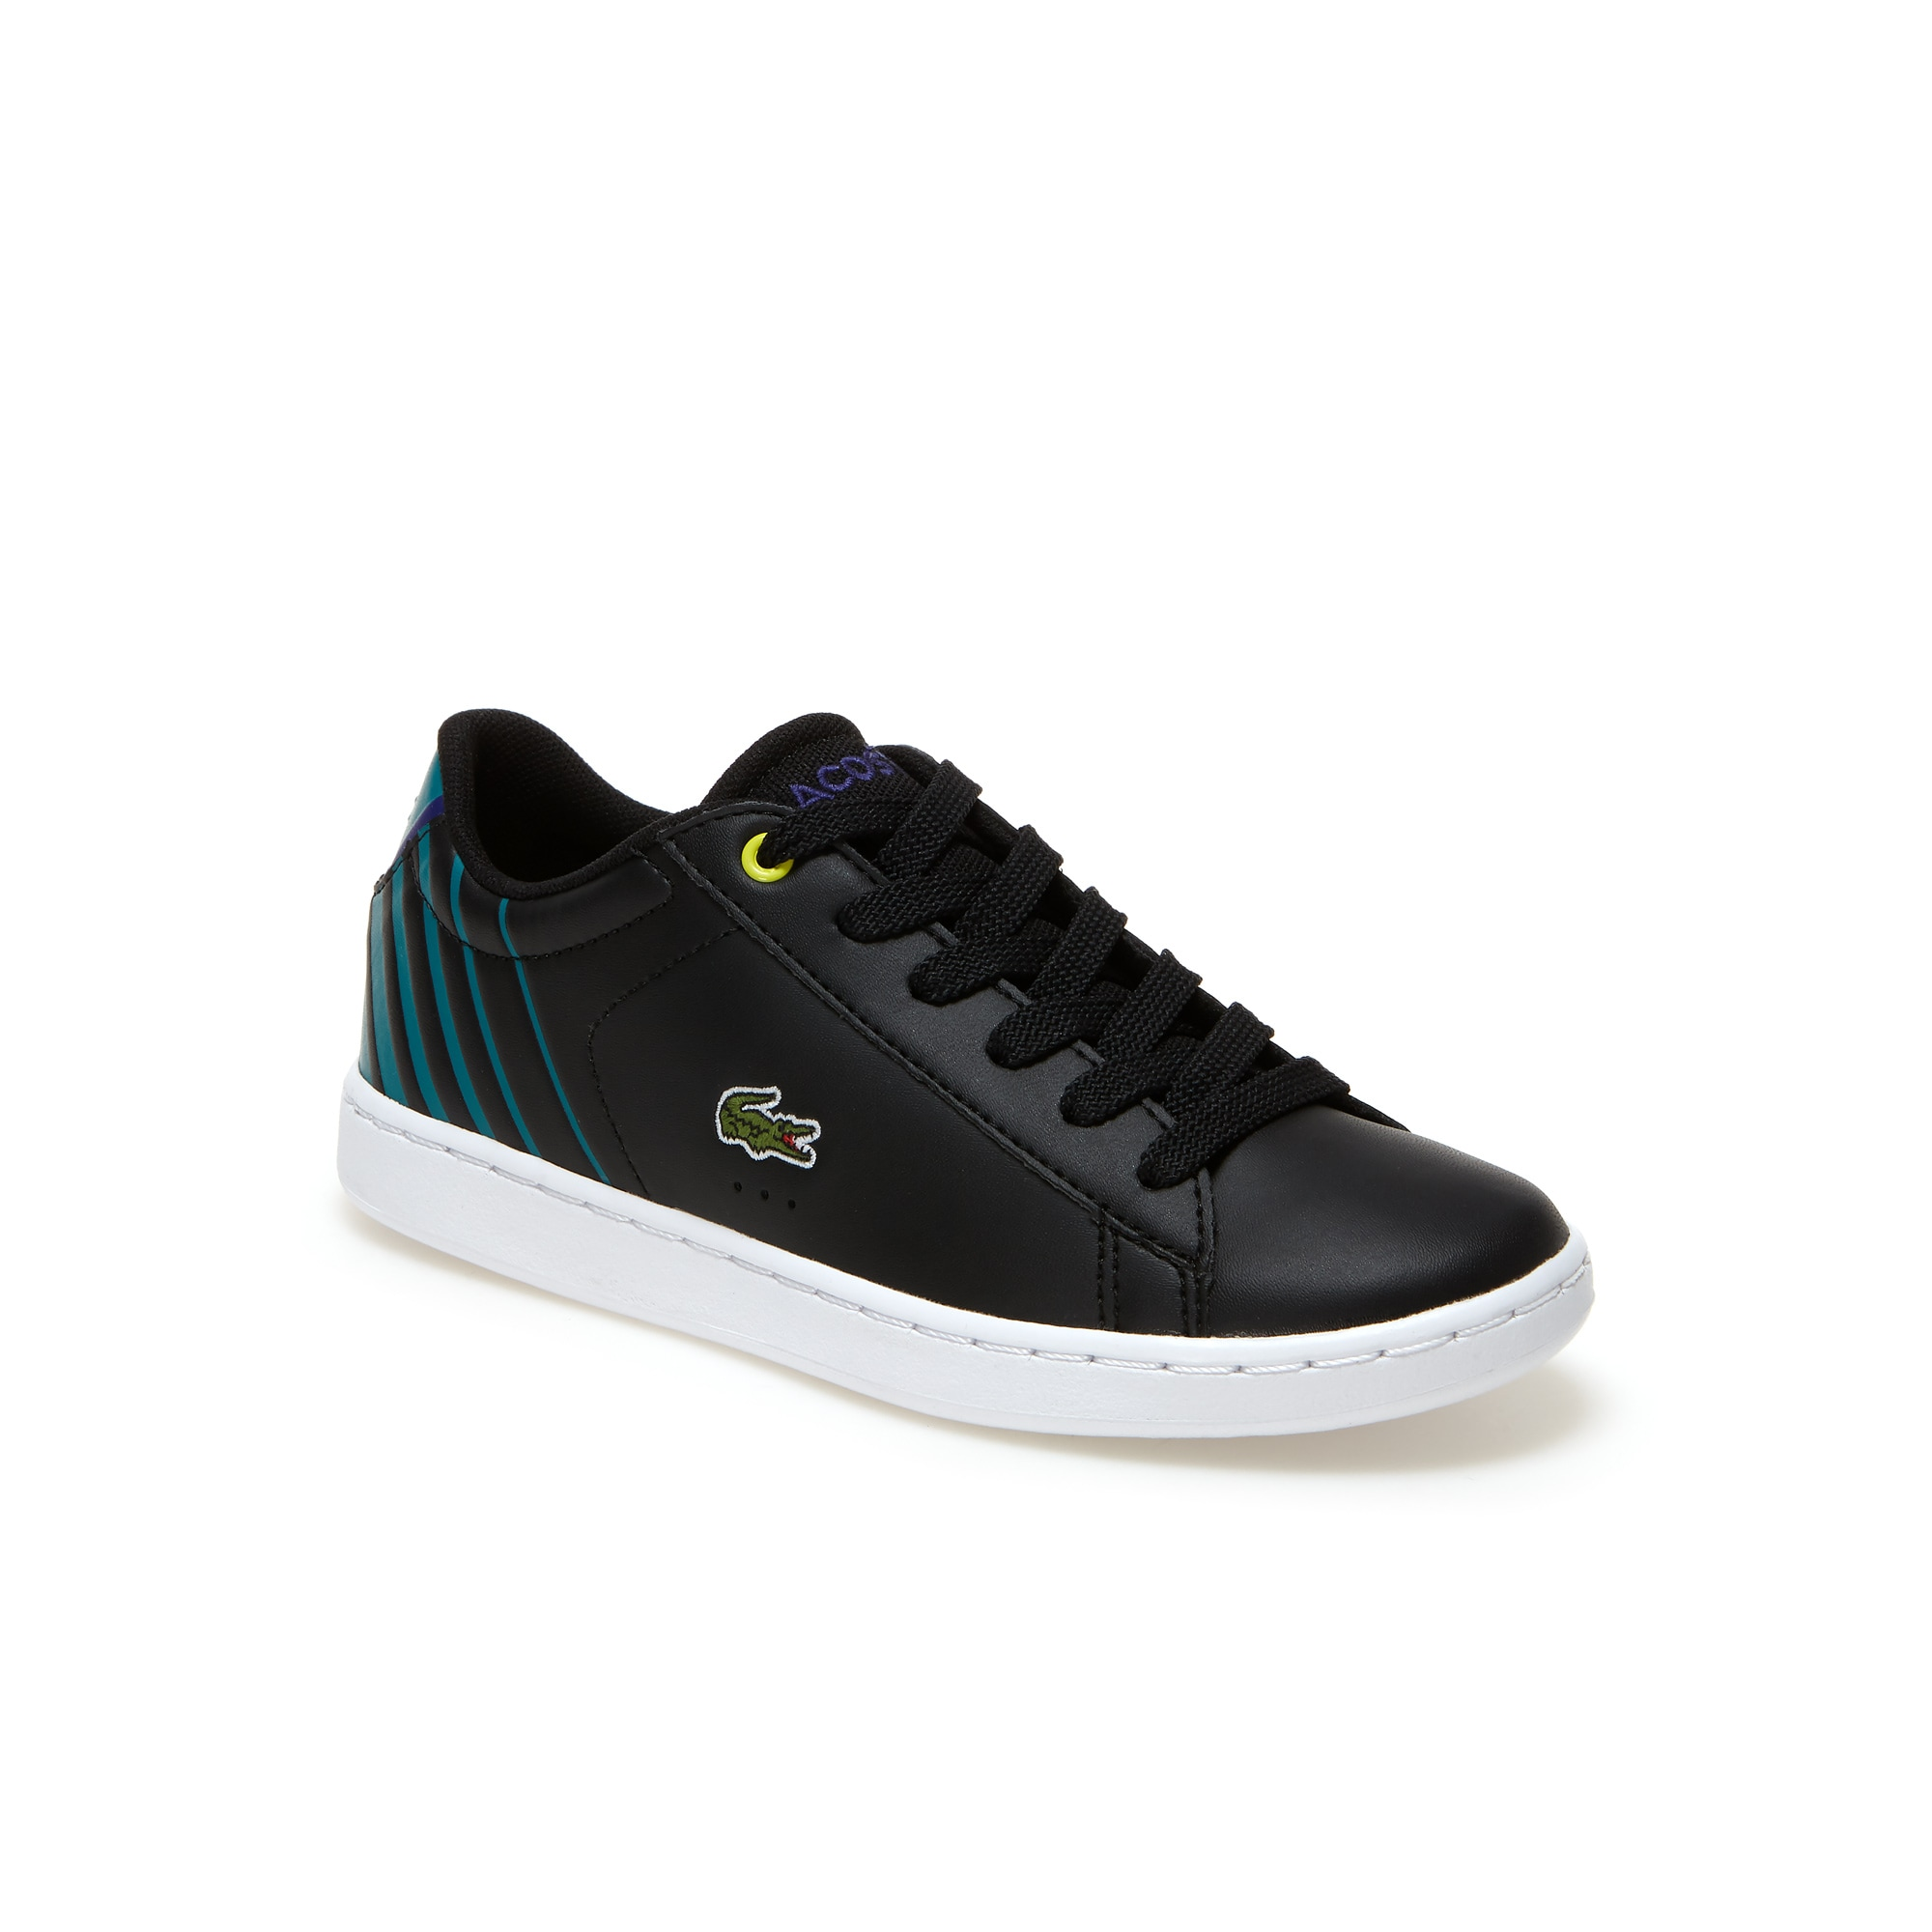 Sneakers Carnaby Evo bambini in similpelle e gomma